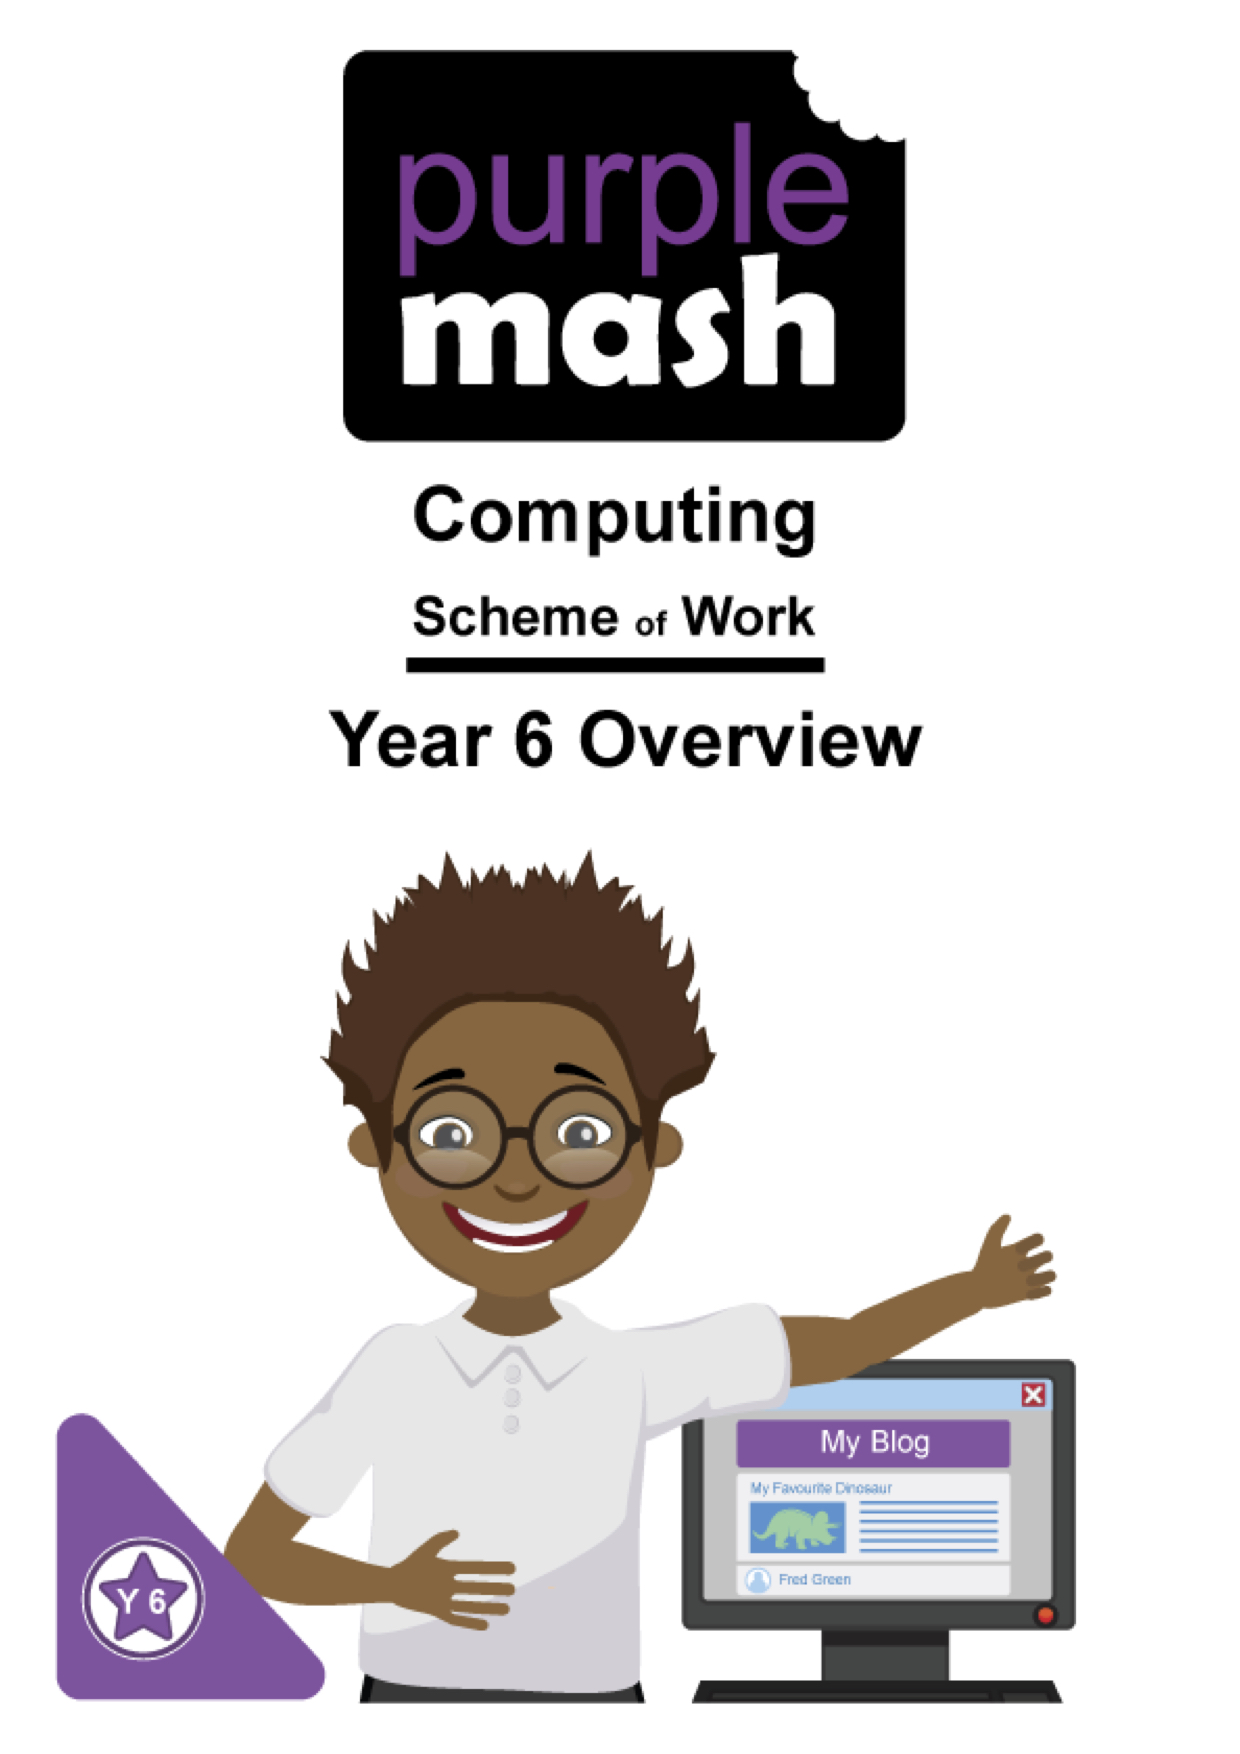 Purple Mash Scheme of Work Year 6 Overview.jpg